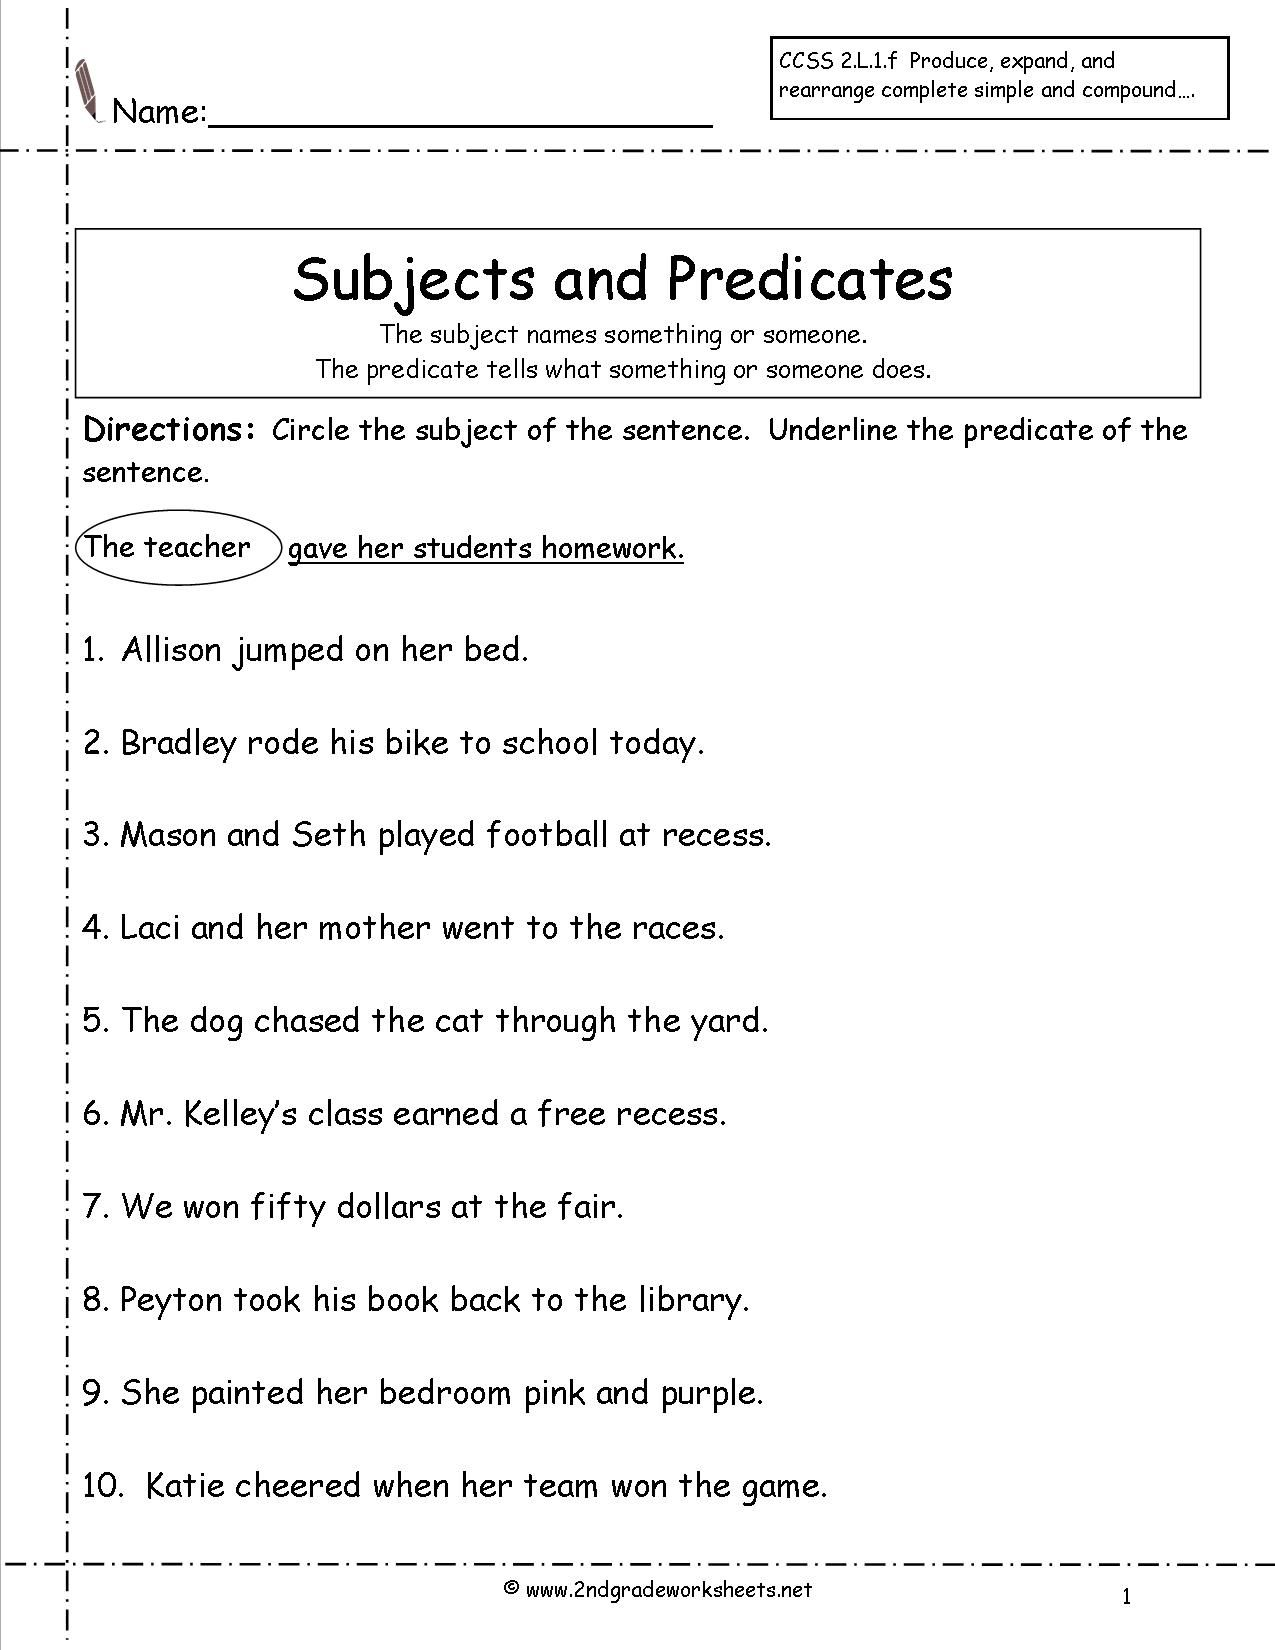 Subject And Predicate Worksheets Subjectsandpredicates